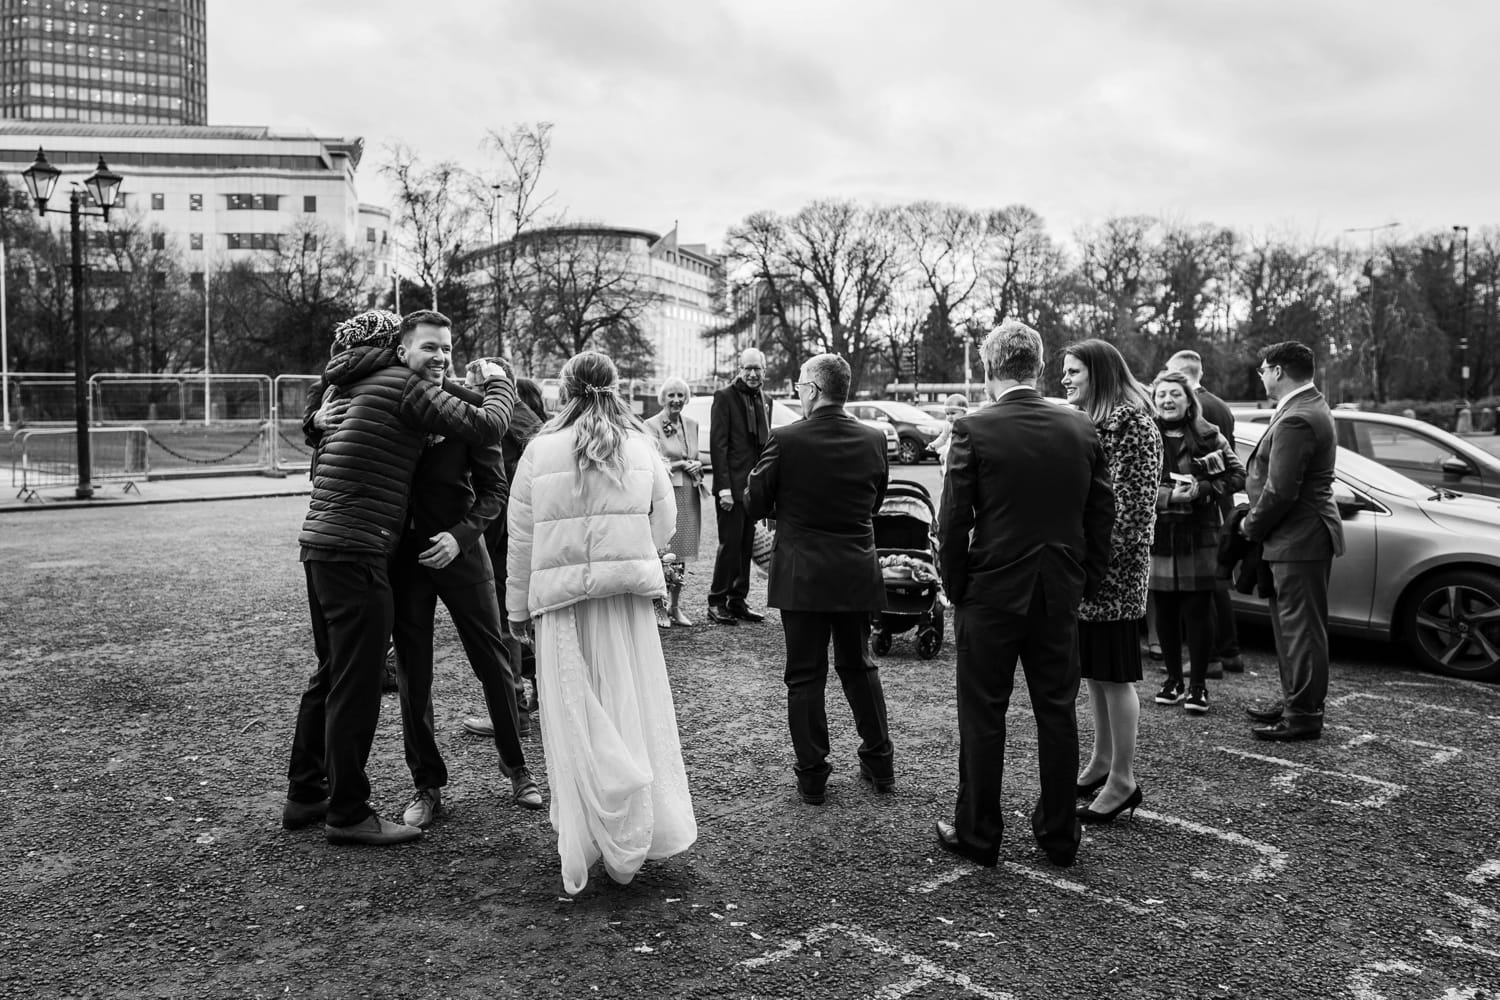 Wedding party arrives at Cardiff City Hall